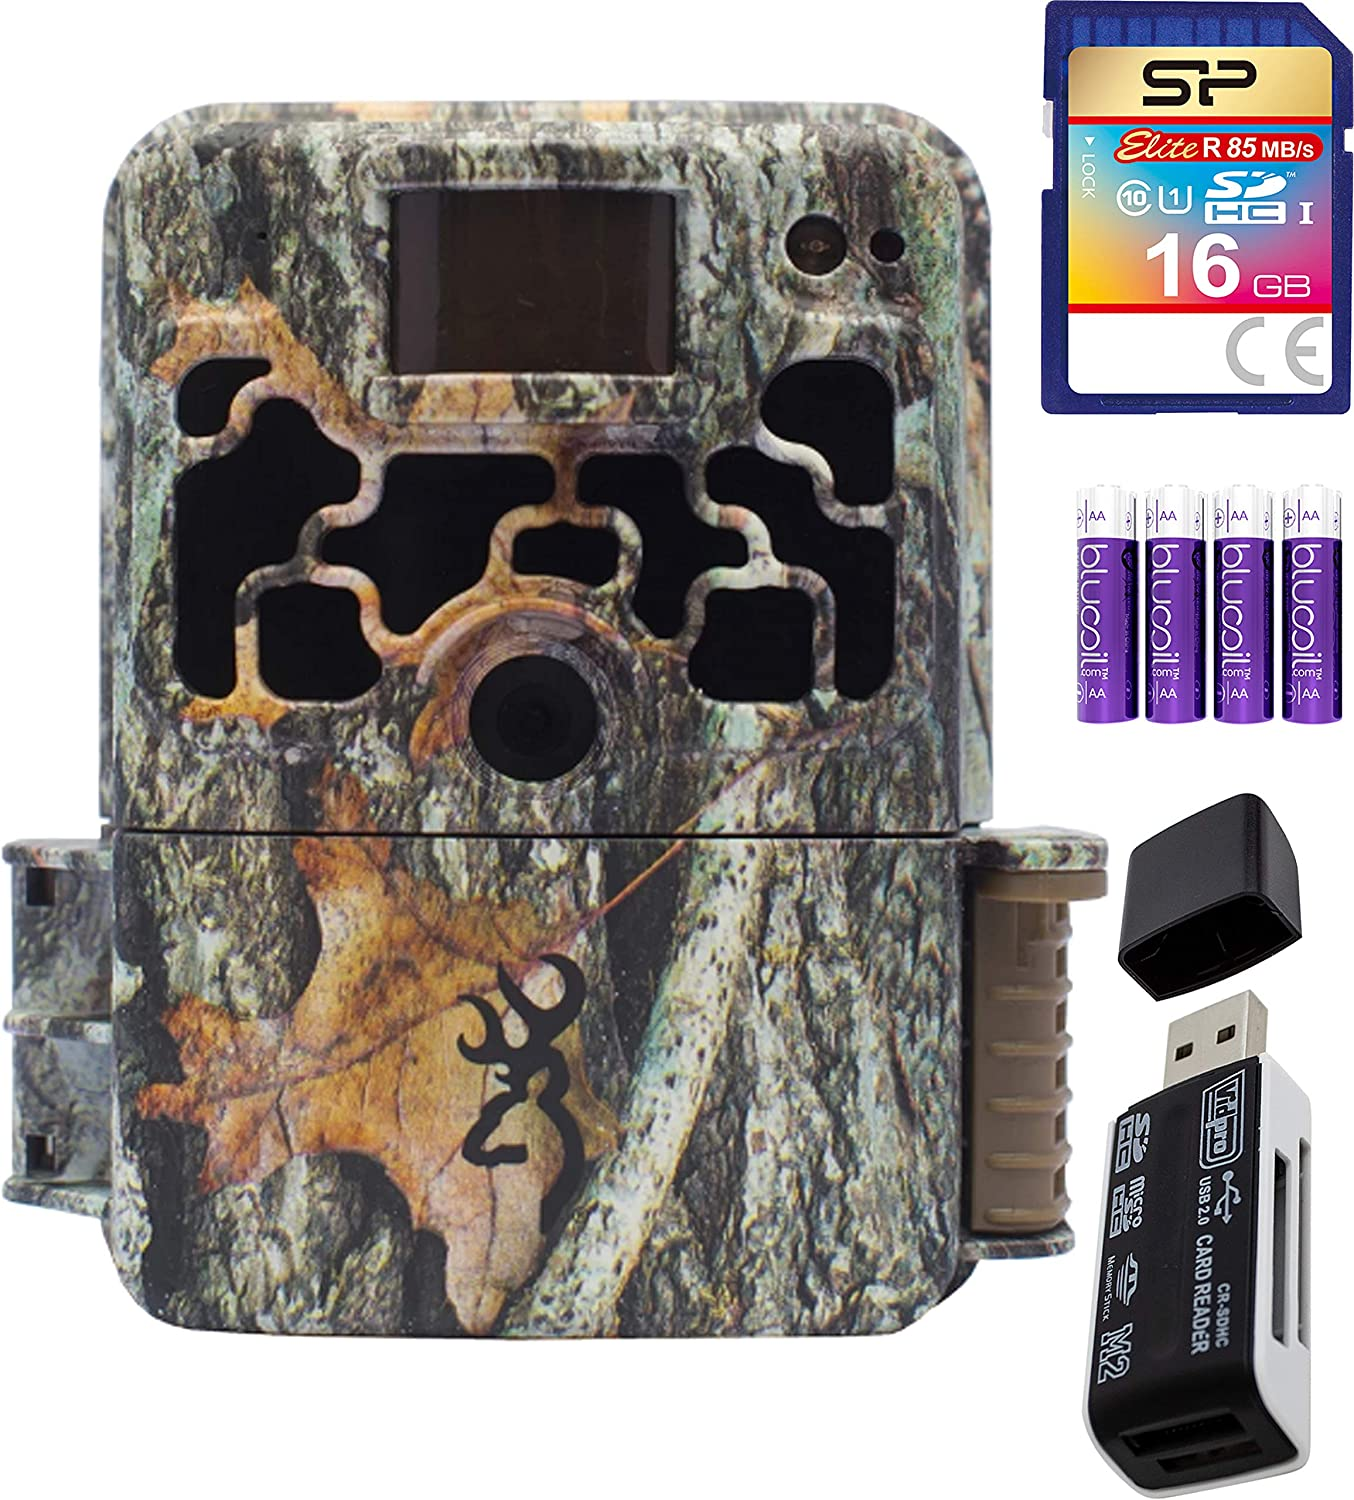 Browning Trail Cameras BTC-6HDX Dark Ops Extreme 16MP Game Cam Bundle with USB 2.0 Card Reader, Silicon Power 16GB Class 10 SDHC SD Card, and Blucoil 4 AA Batteries